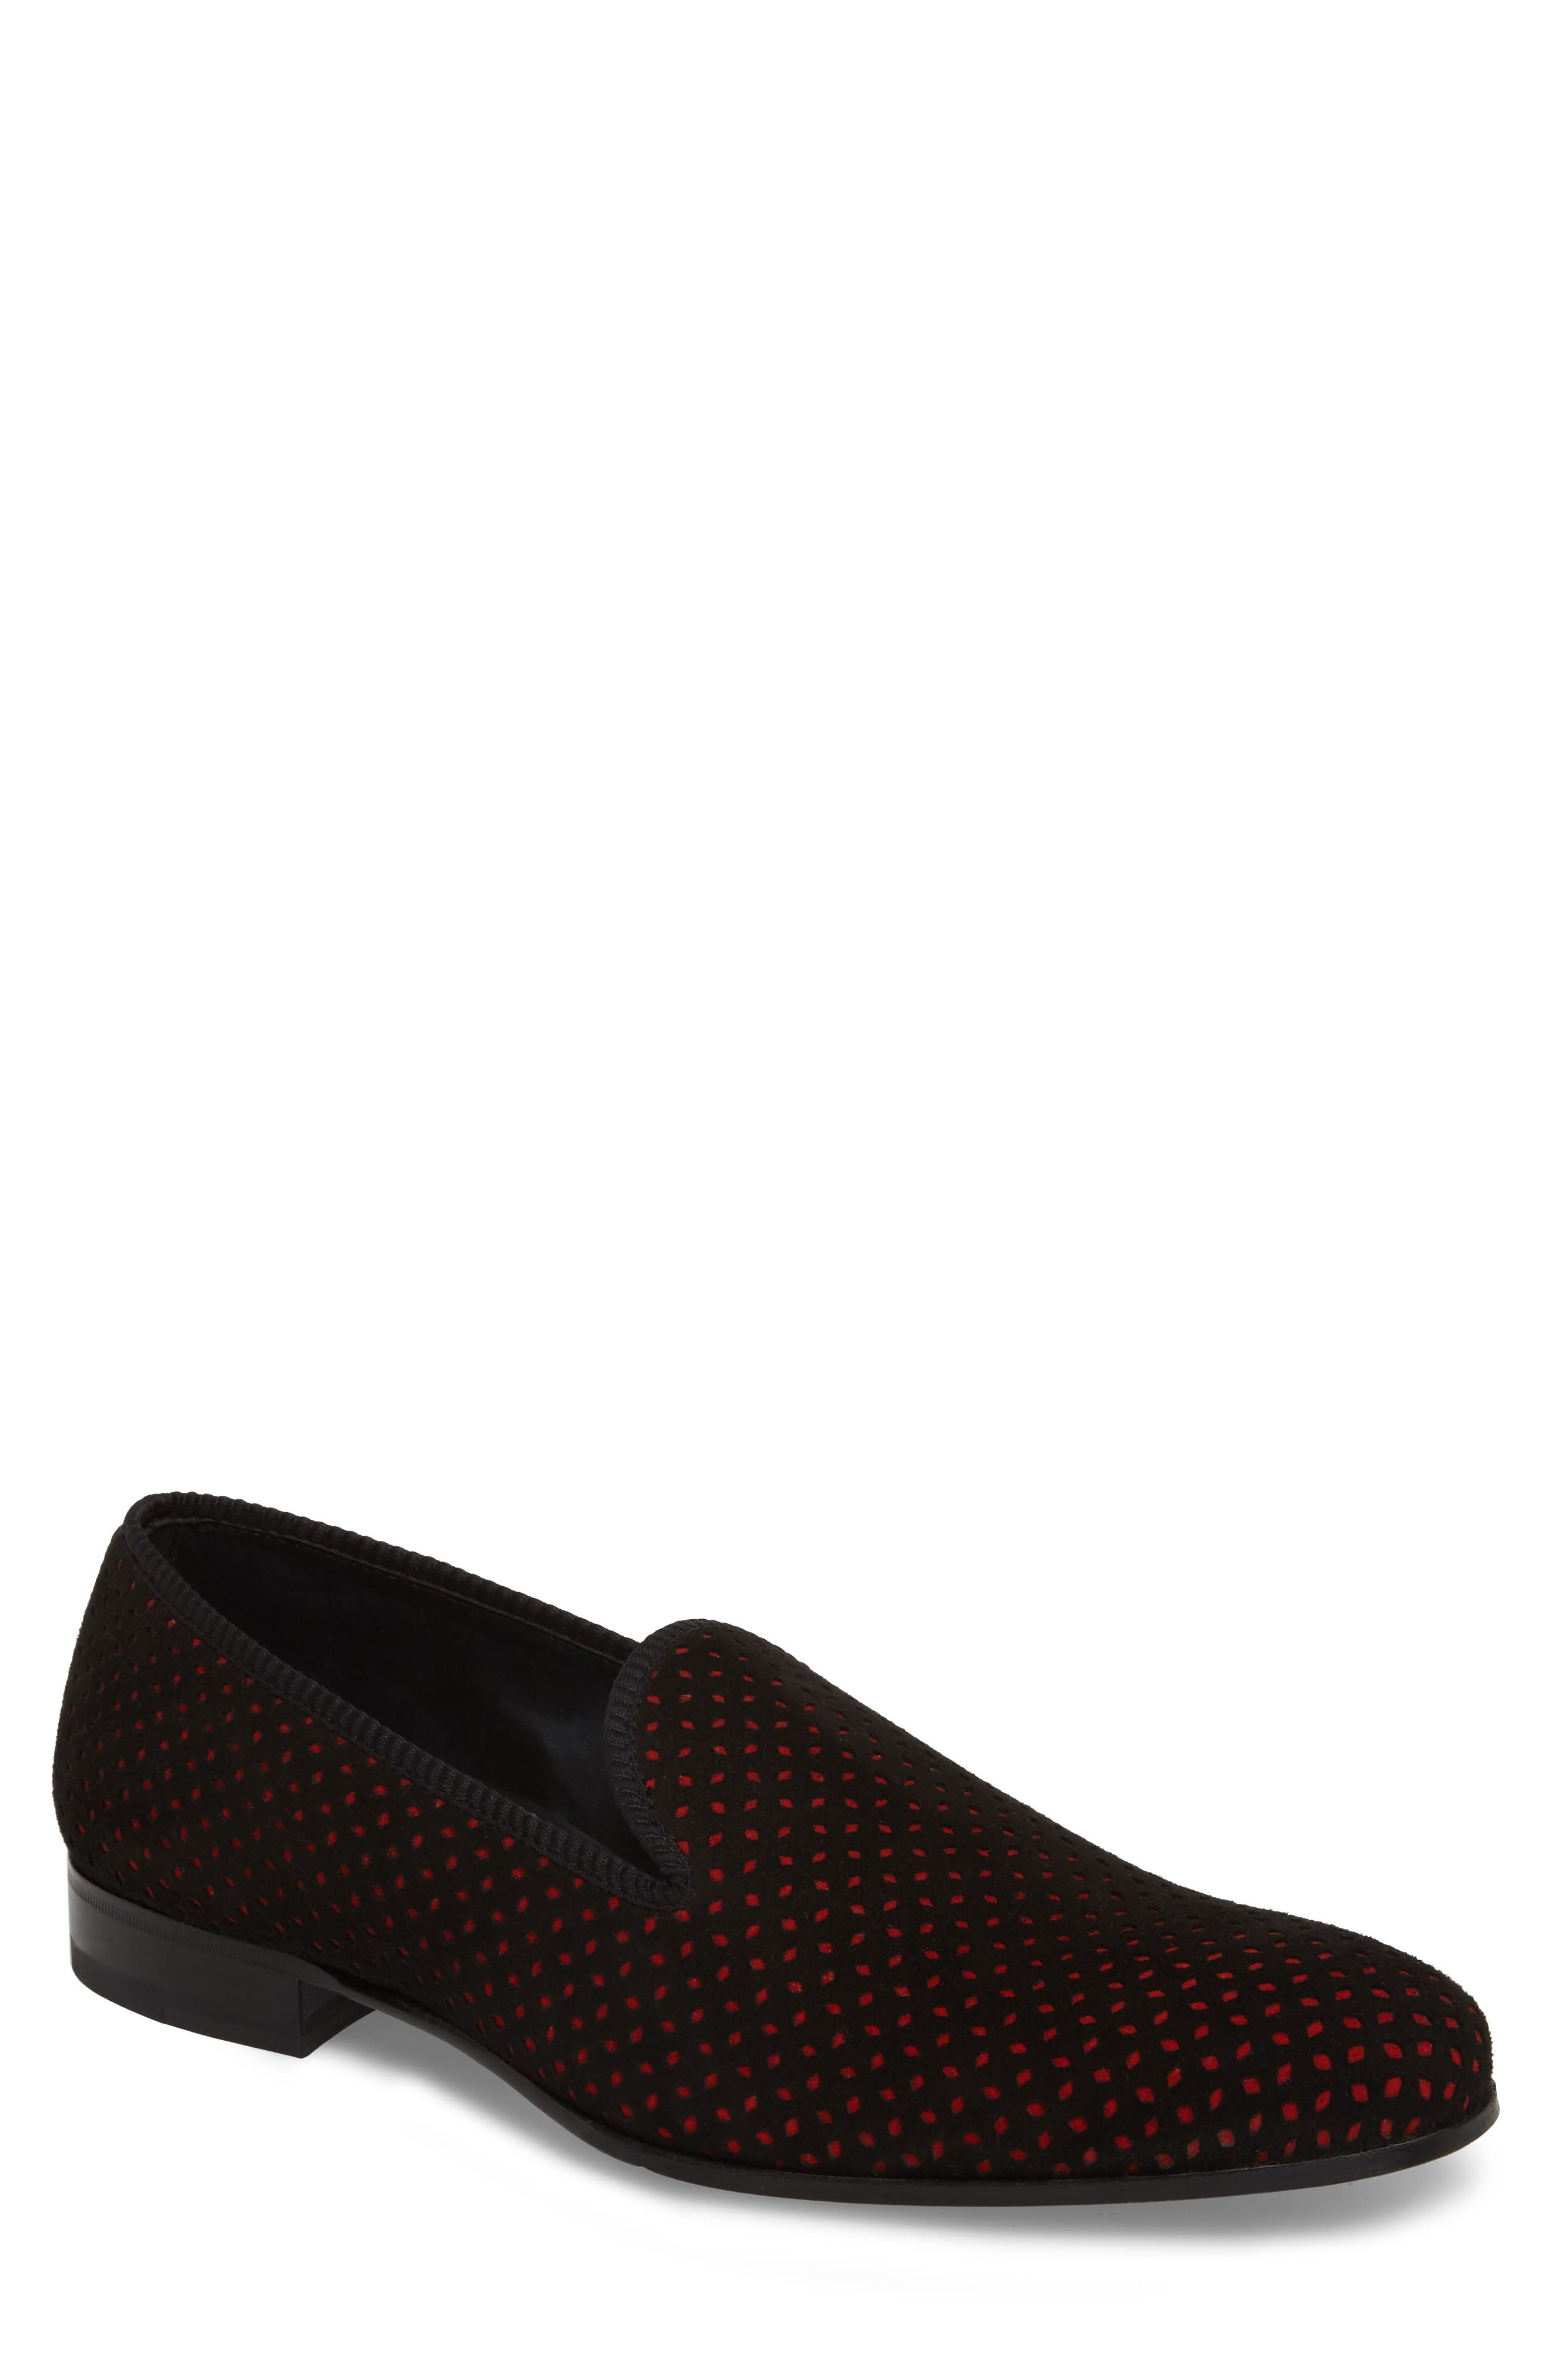 Cibeles Venetian Loafer,                             Main thumbnail 1, color,                             BLACK/ RED SUEDE